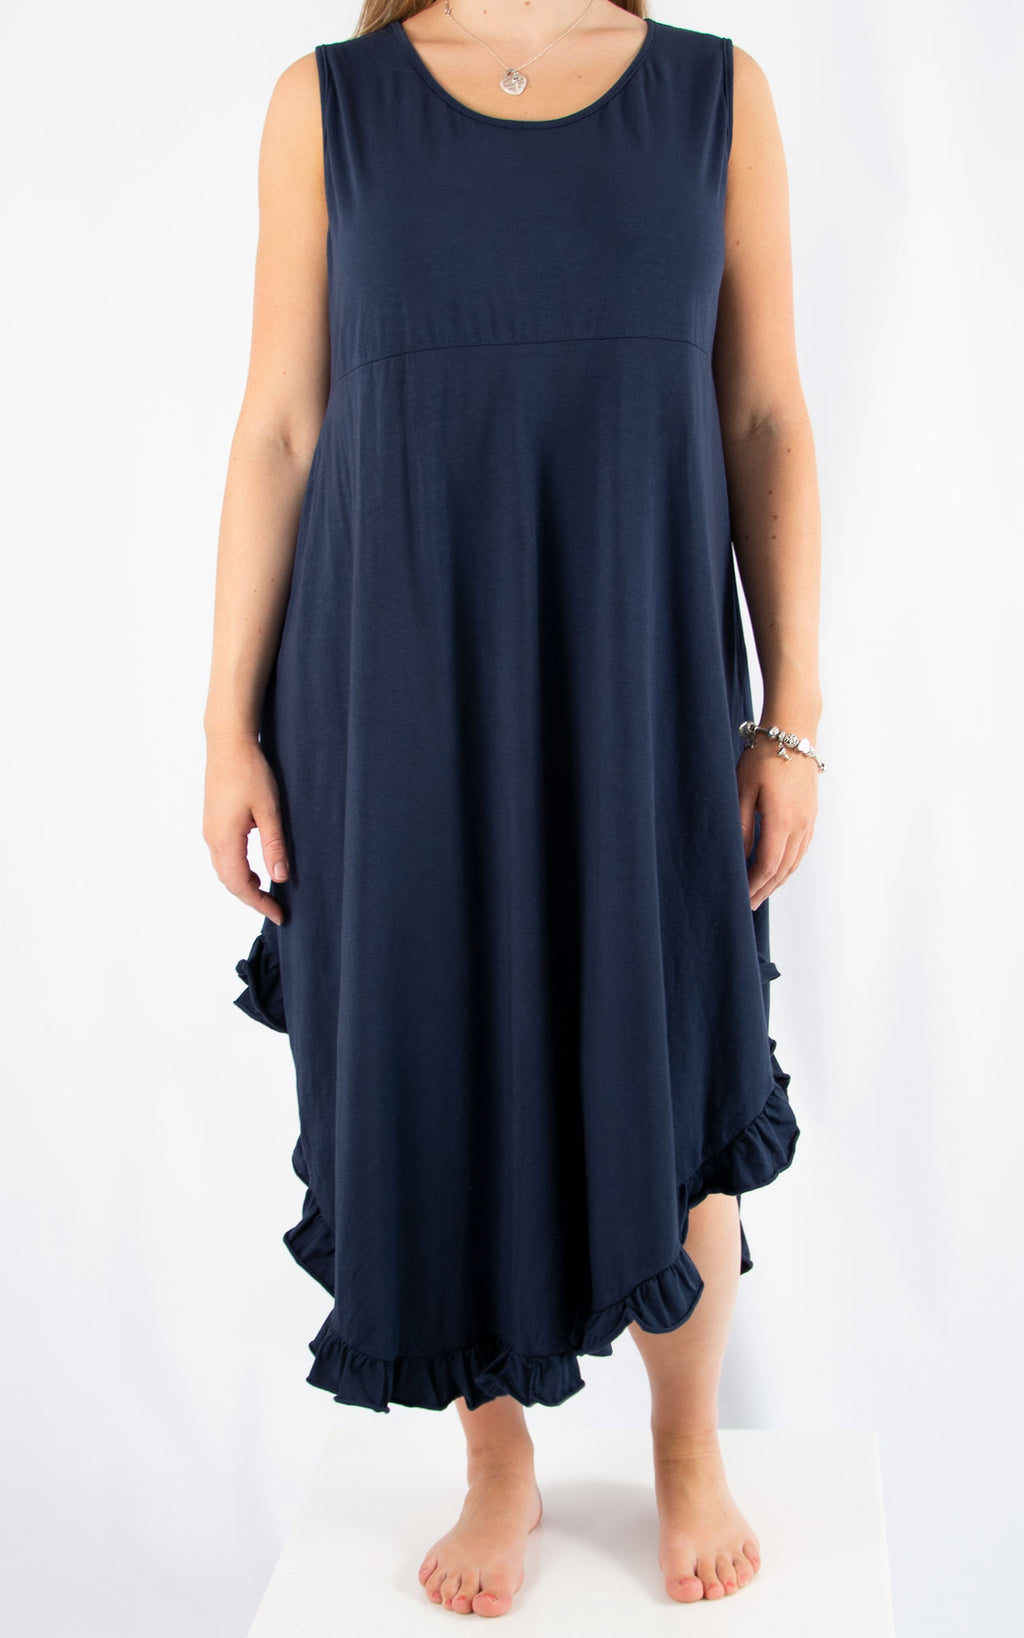 Navy Ruffle Maxi Dress | Made in Italy